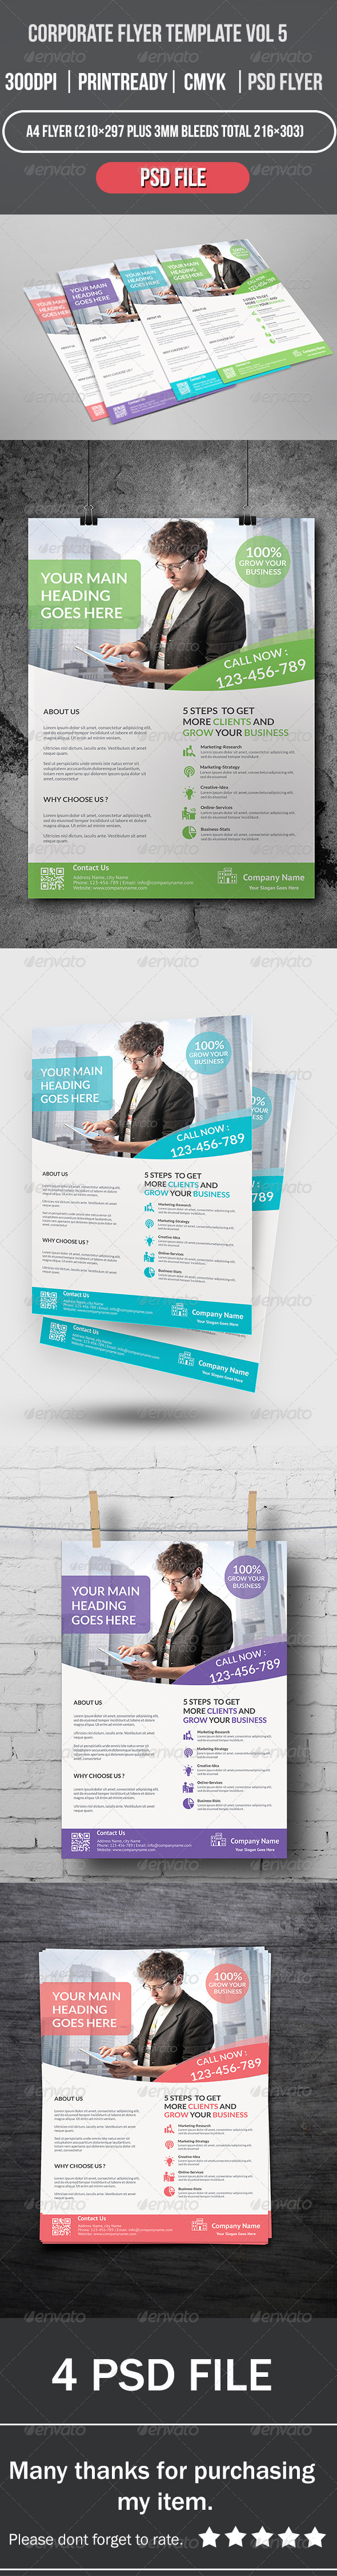 GraphicRiver Corporate Flyer Template Vol 5 8435034